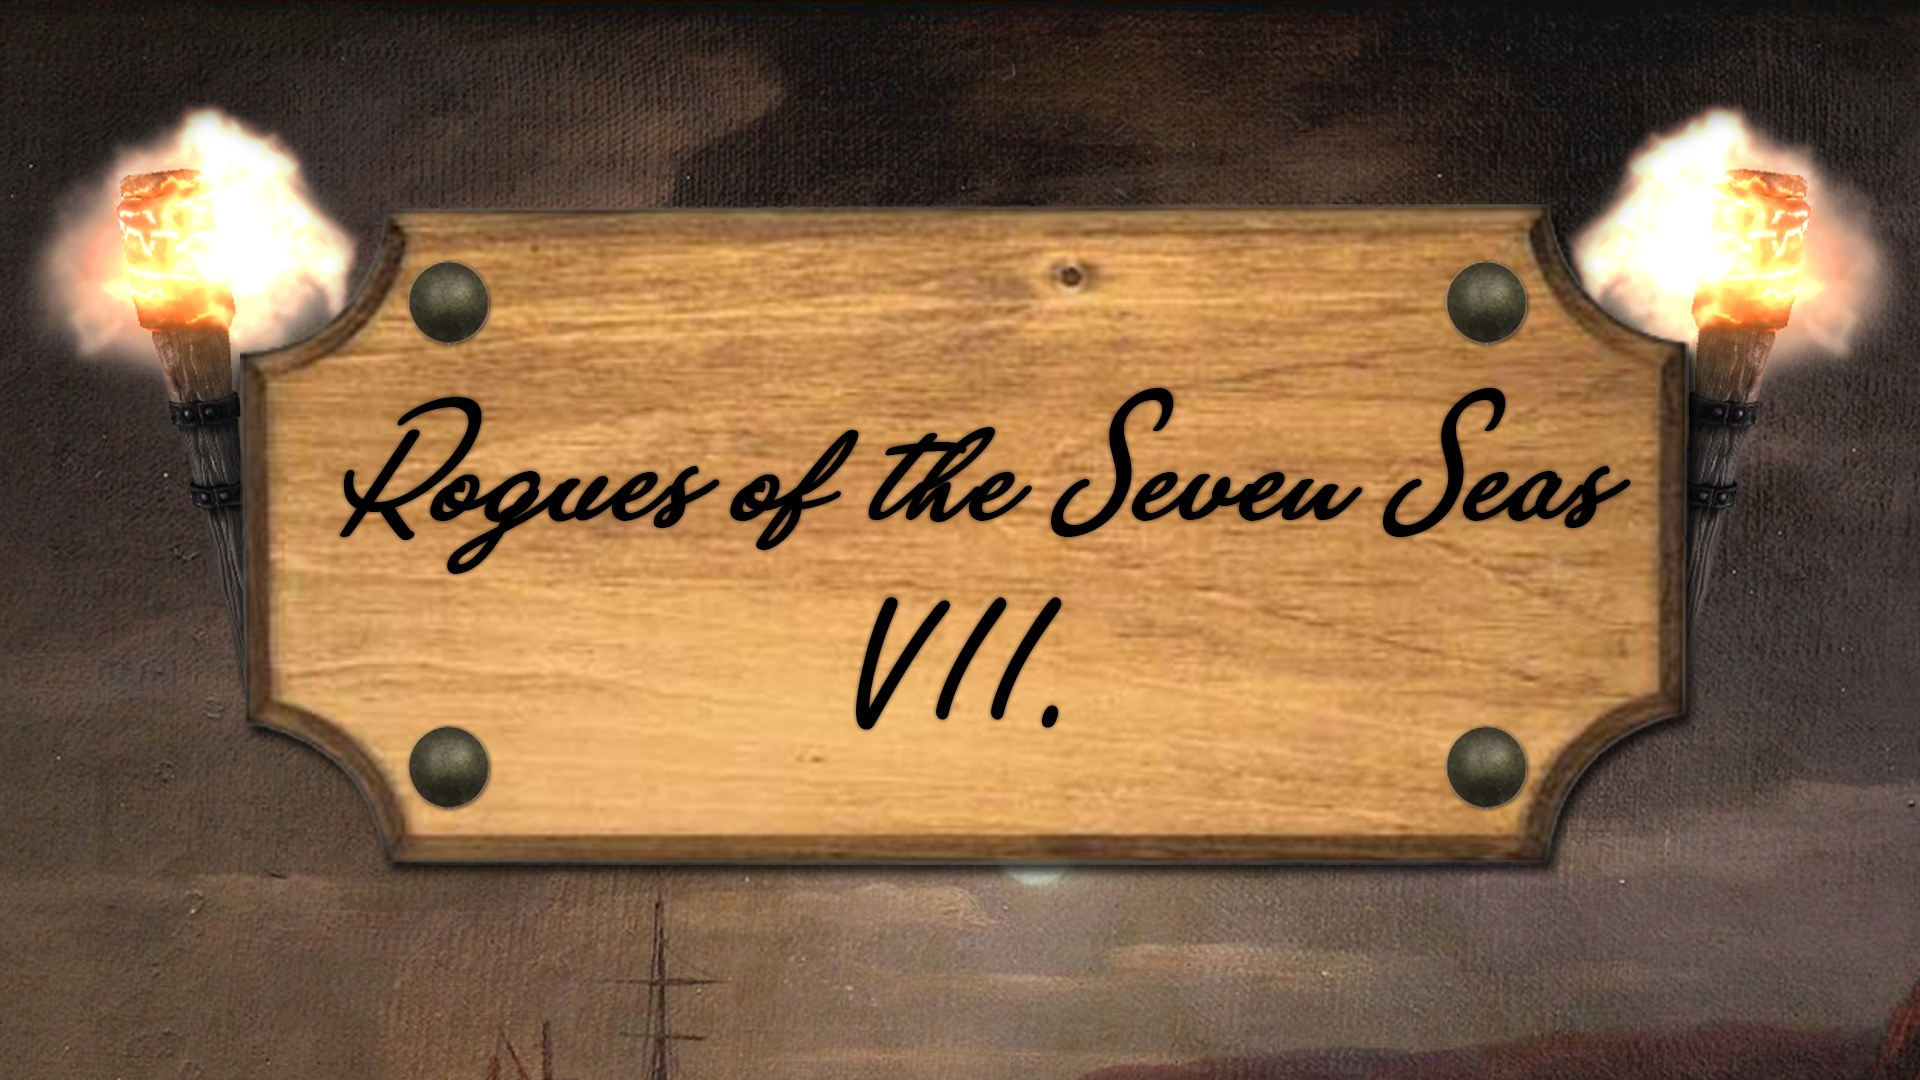 Rogues of the Seven Seas VII.